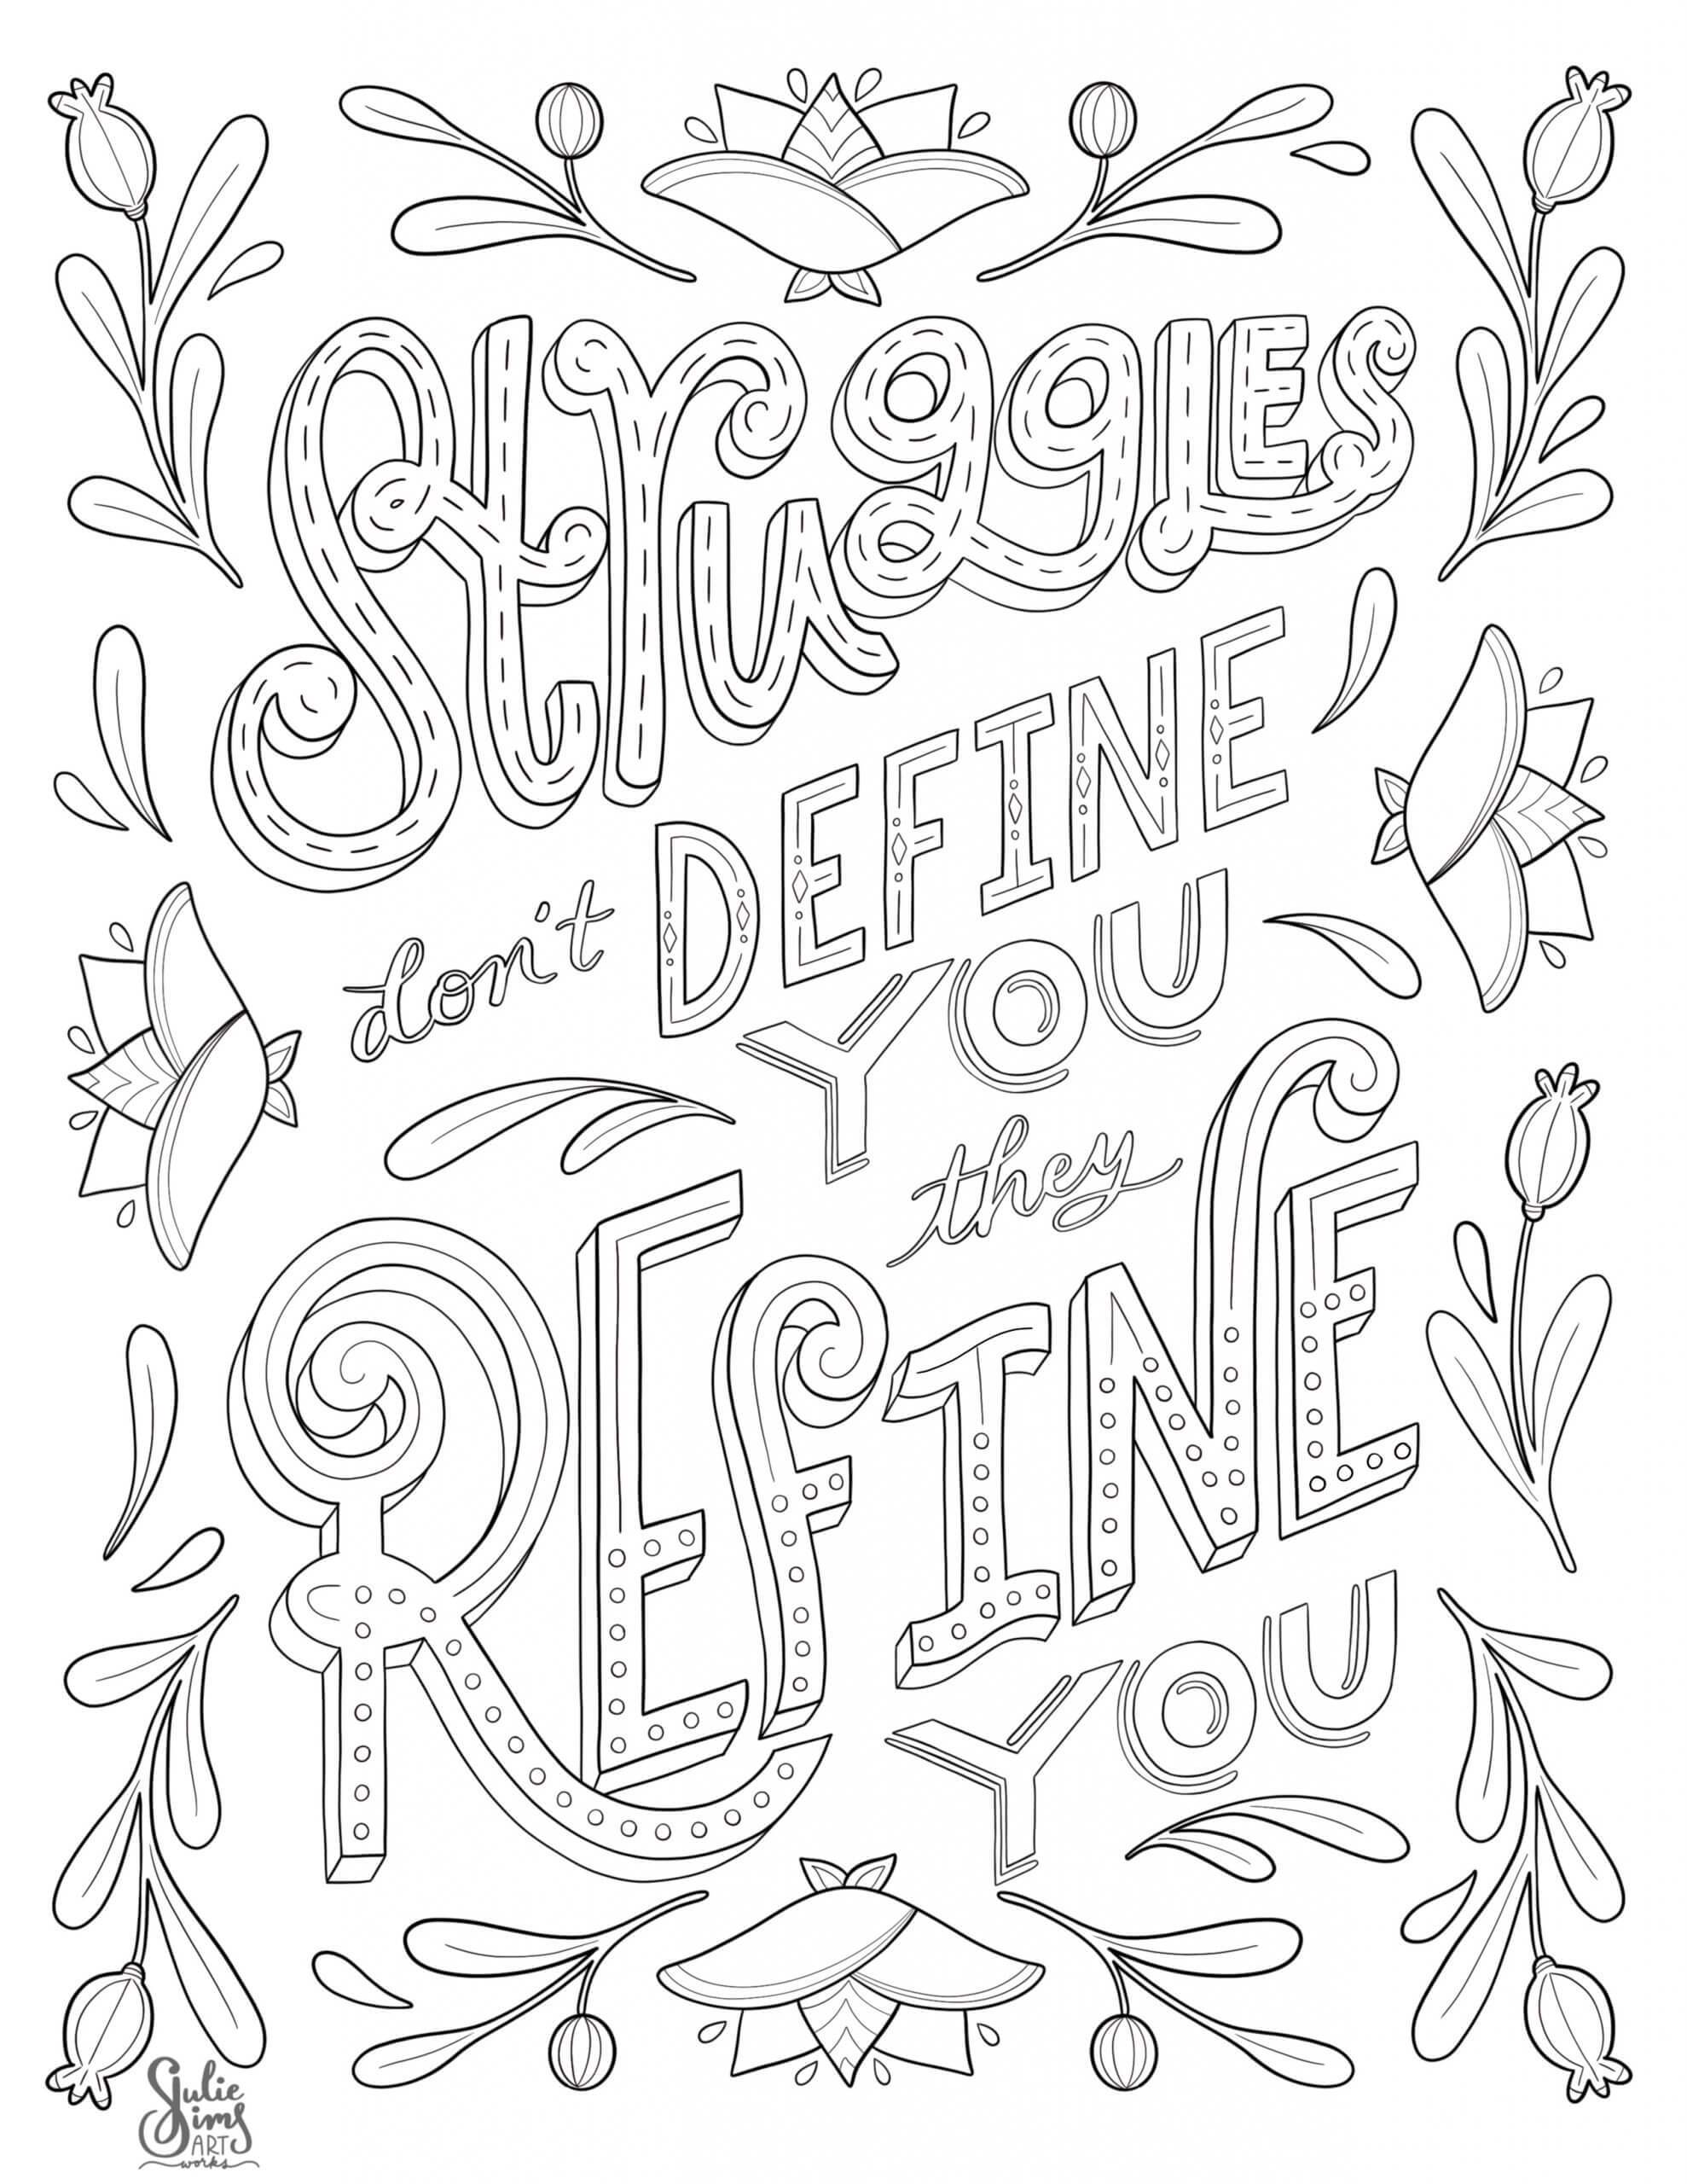 Hand lettering coloring page, struggles don't define you, illustrated lettering